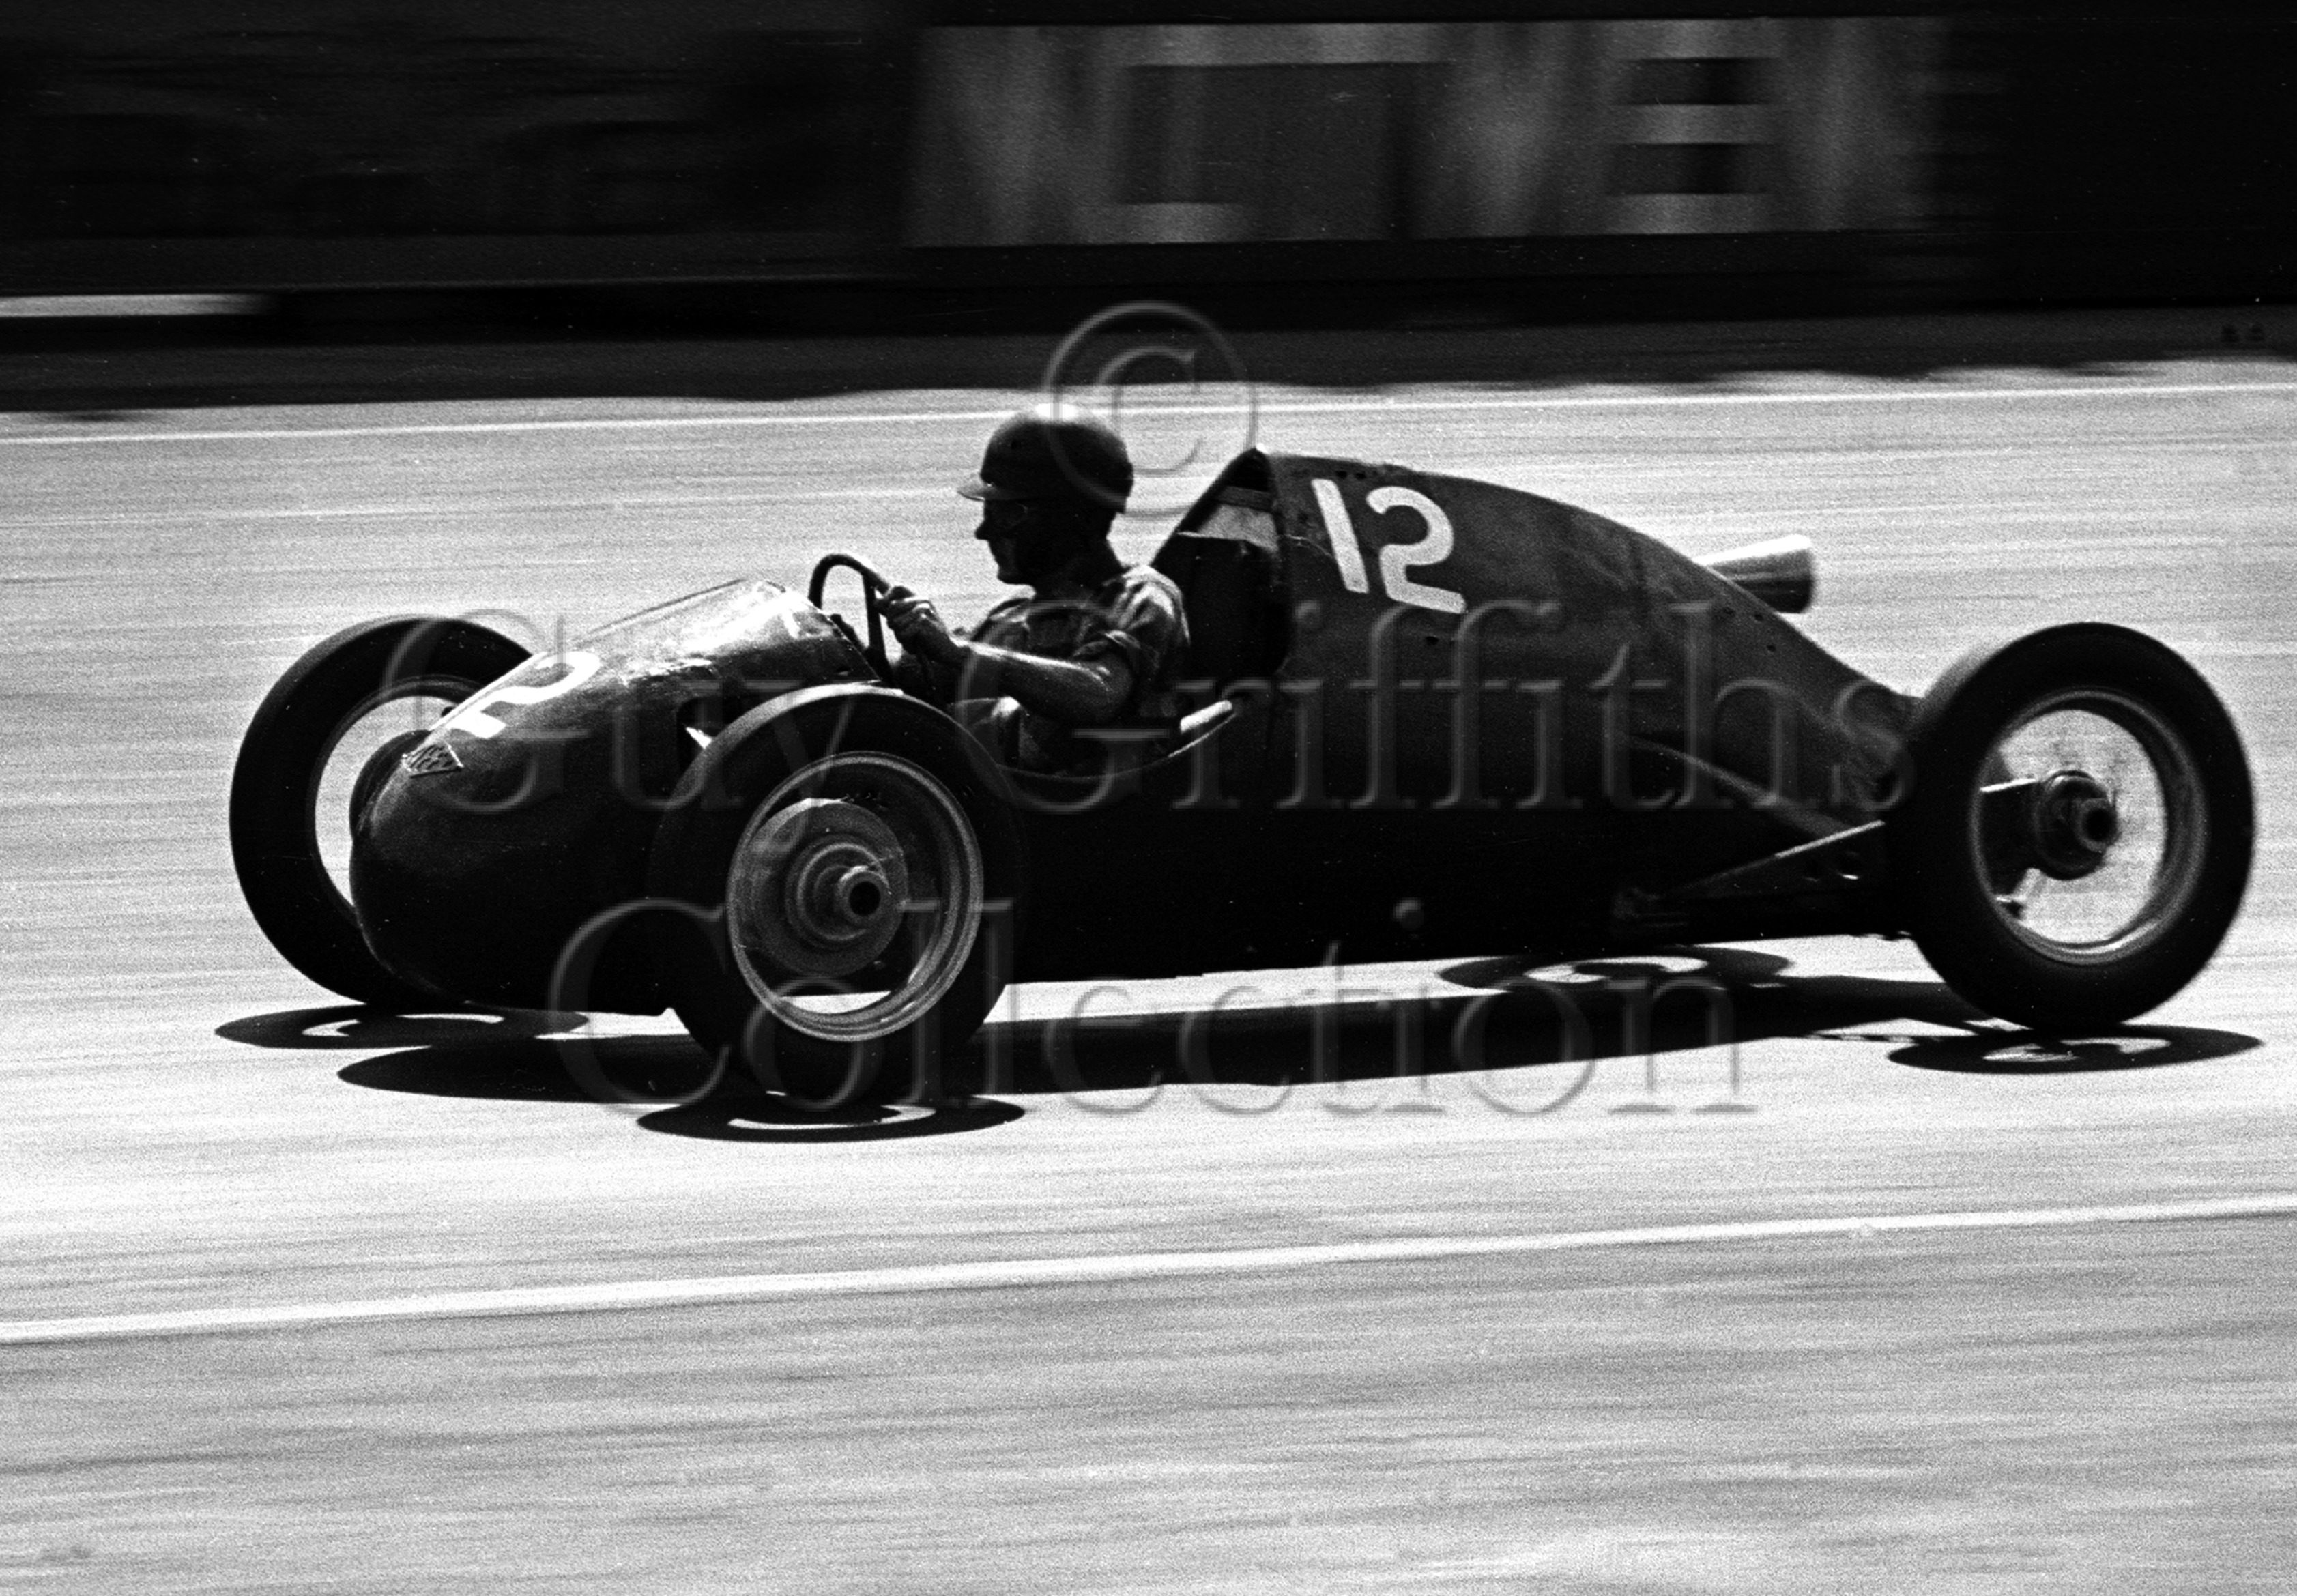 59-691–D-Parker–Kieft–Silverstone–23-08-1952.jpg - The Guy Griffiths Collection